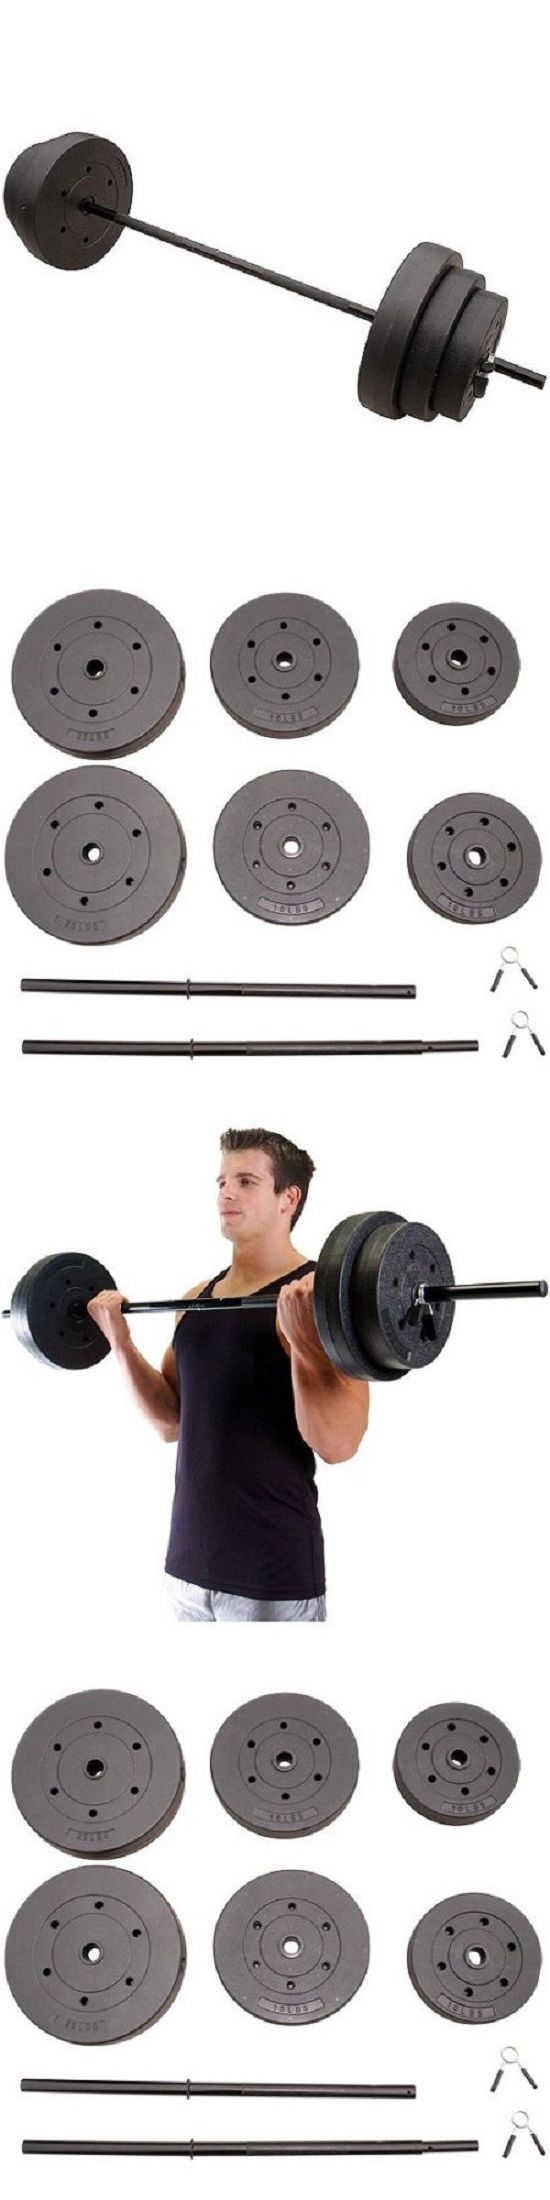 Other Strength Training 28067: Weight Lifting Set 100 Lbs Vinyl Body Workout Dumbbell Bar Equipment -> BUY IT NOW ONLY: $44.67 on eBay!